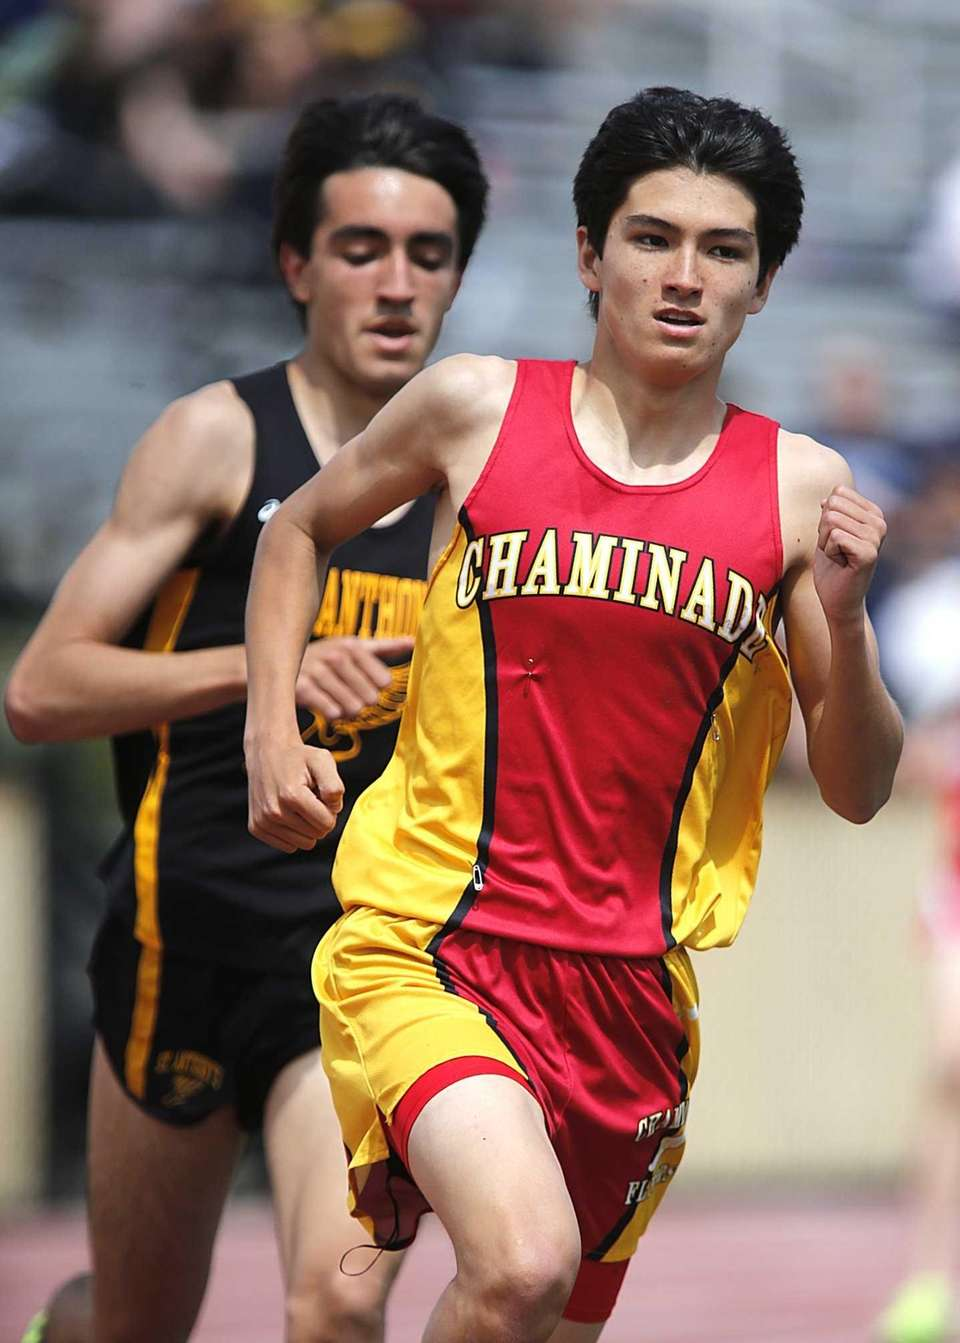 SEAN KELLY Chaminade, Sr. |